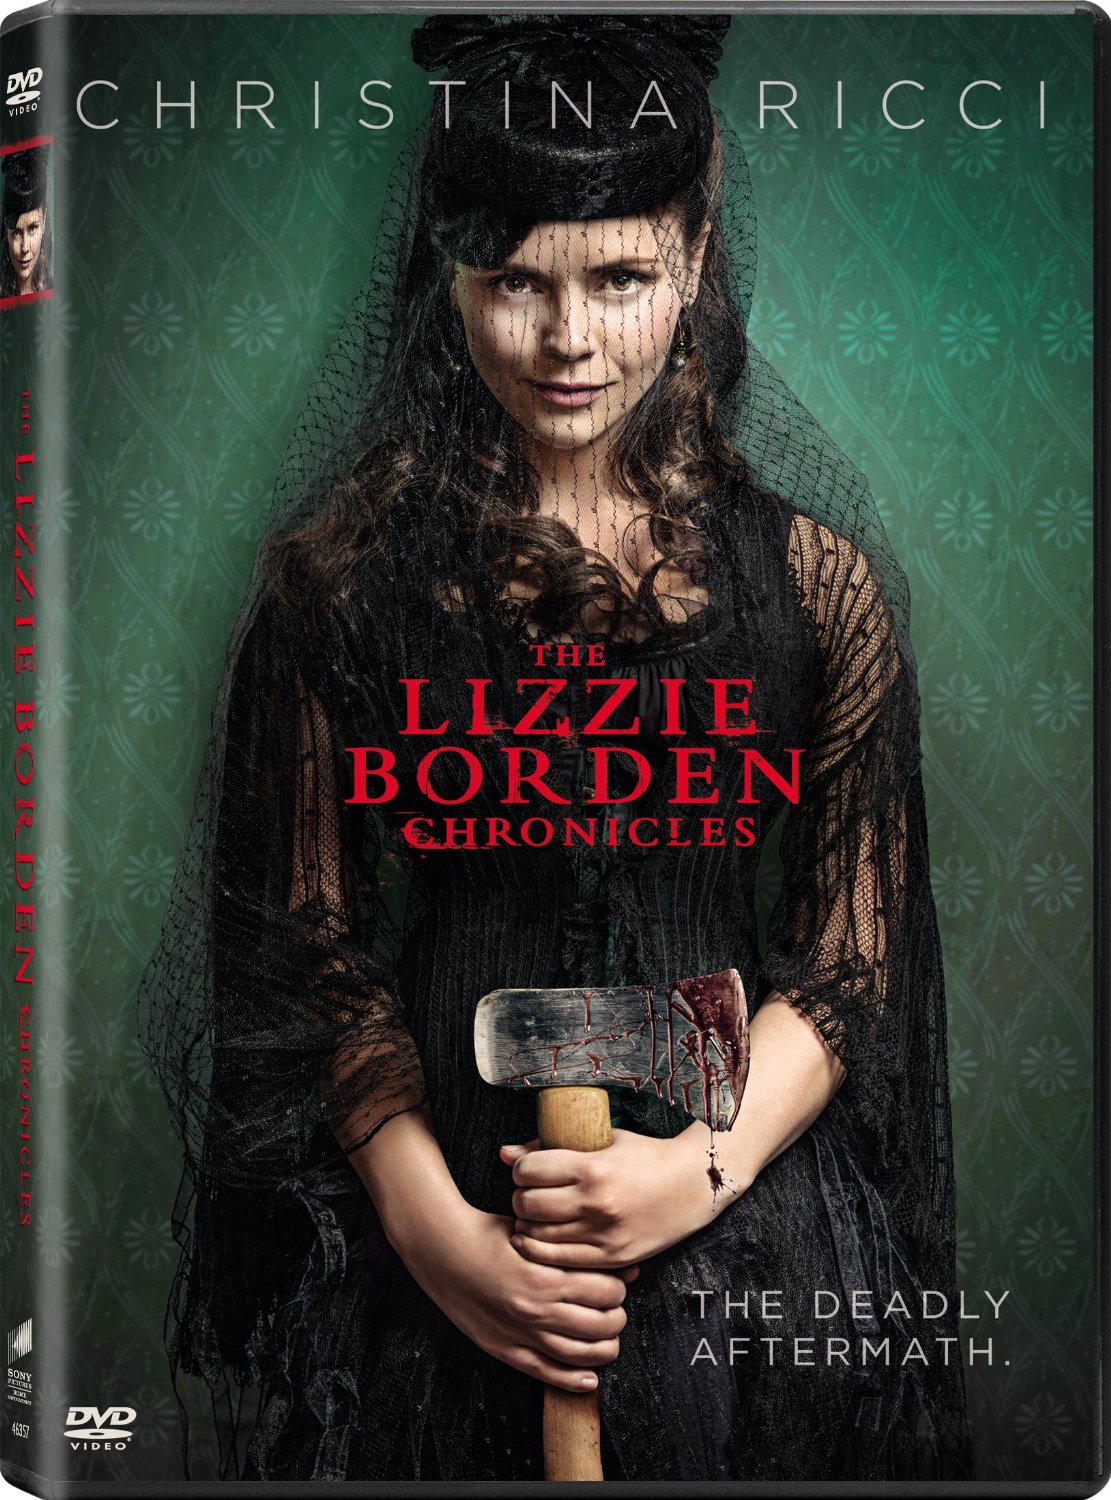 The Lizzie Borden Chronicles [TV Series] - The Lizzie Borden Chronicles: Season One